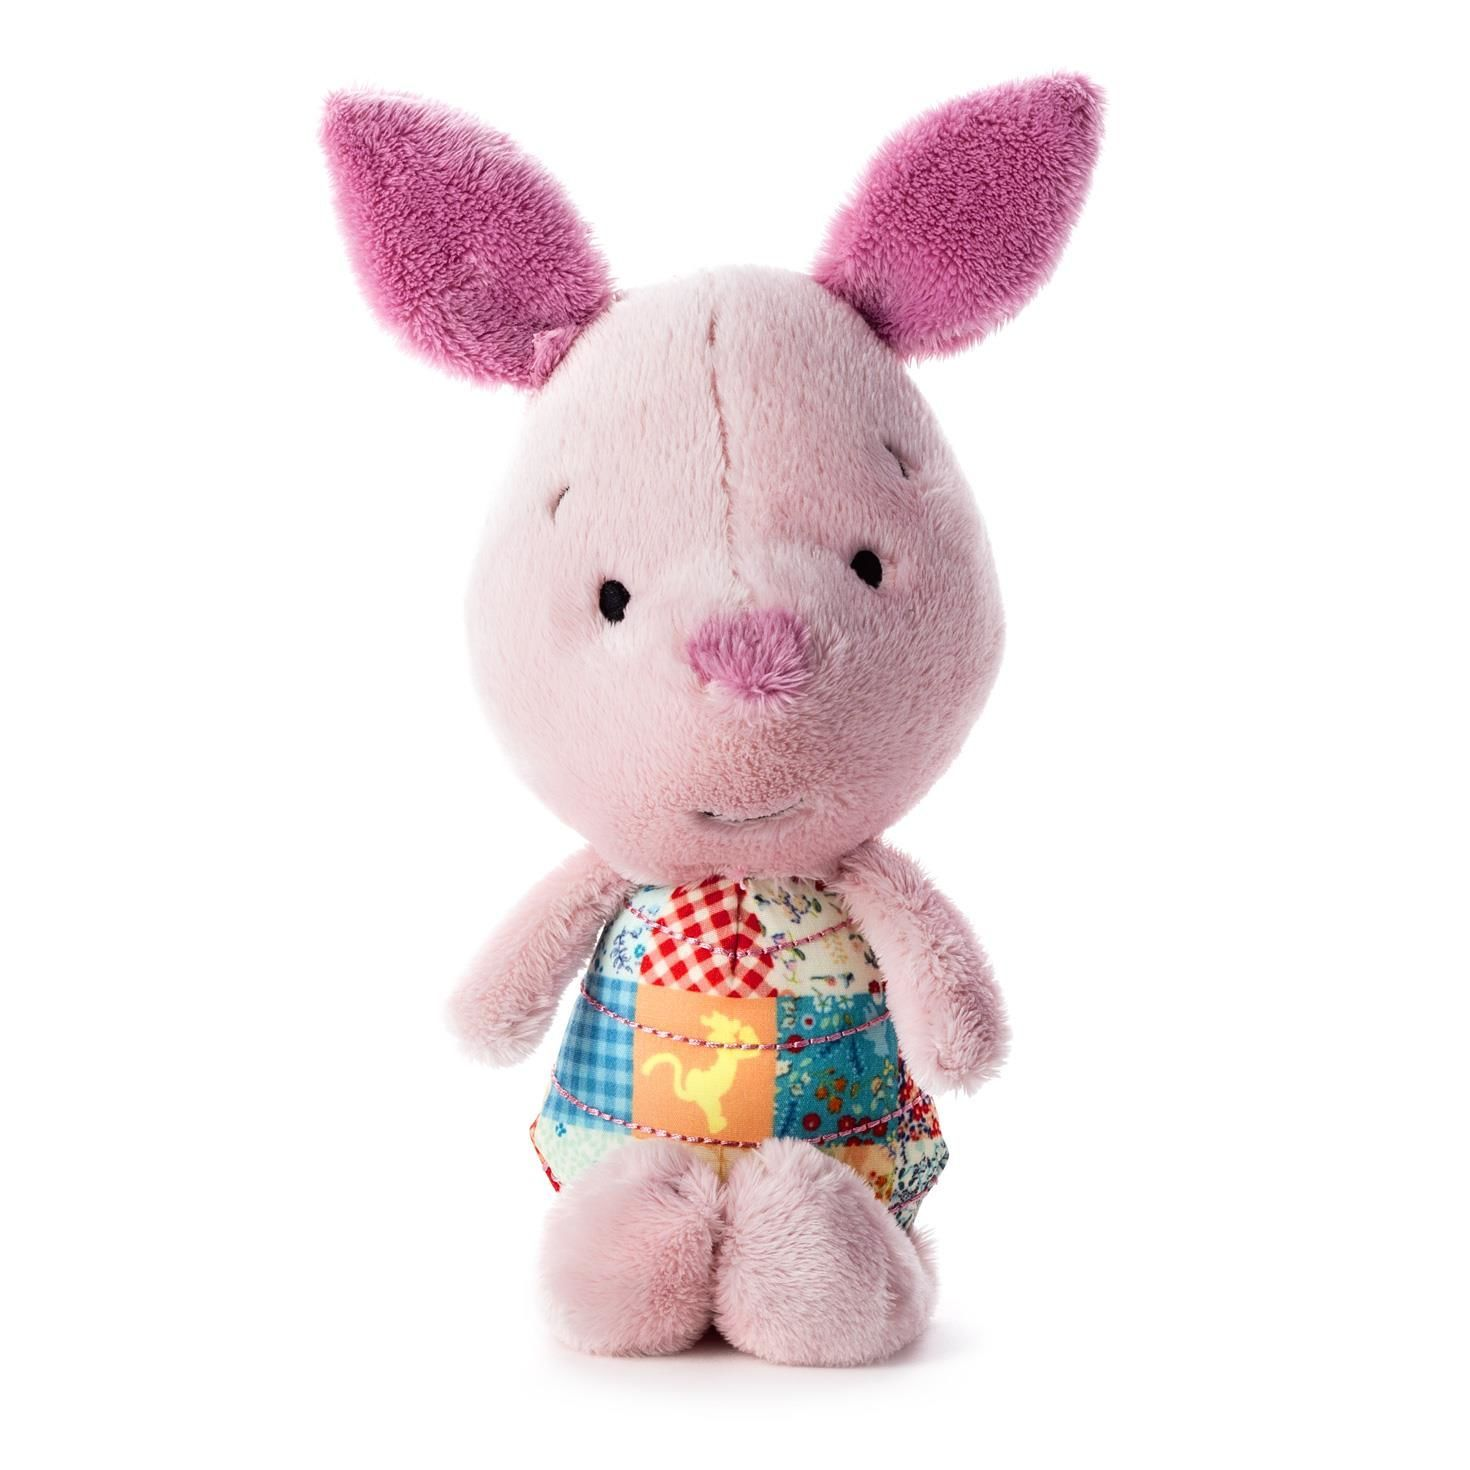 Hooray for spring disney piglet stuffed animal easter gifts hooray for spring disney piglet stuffed animal negle Image collections